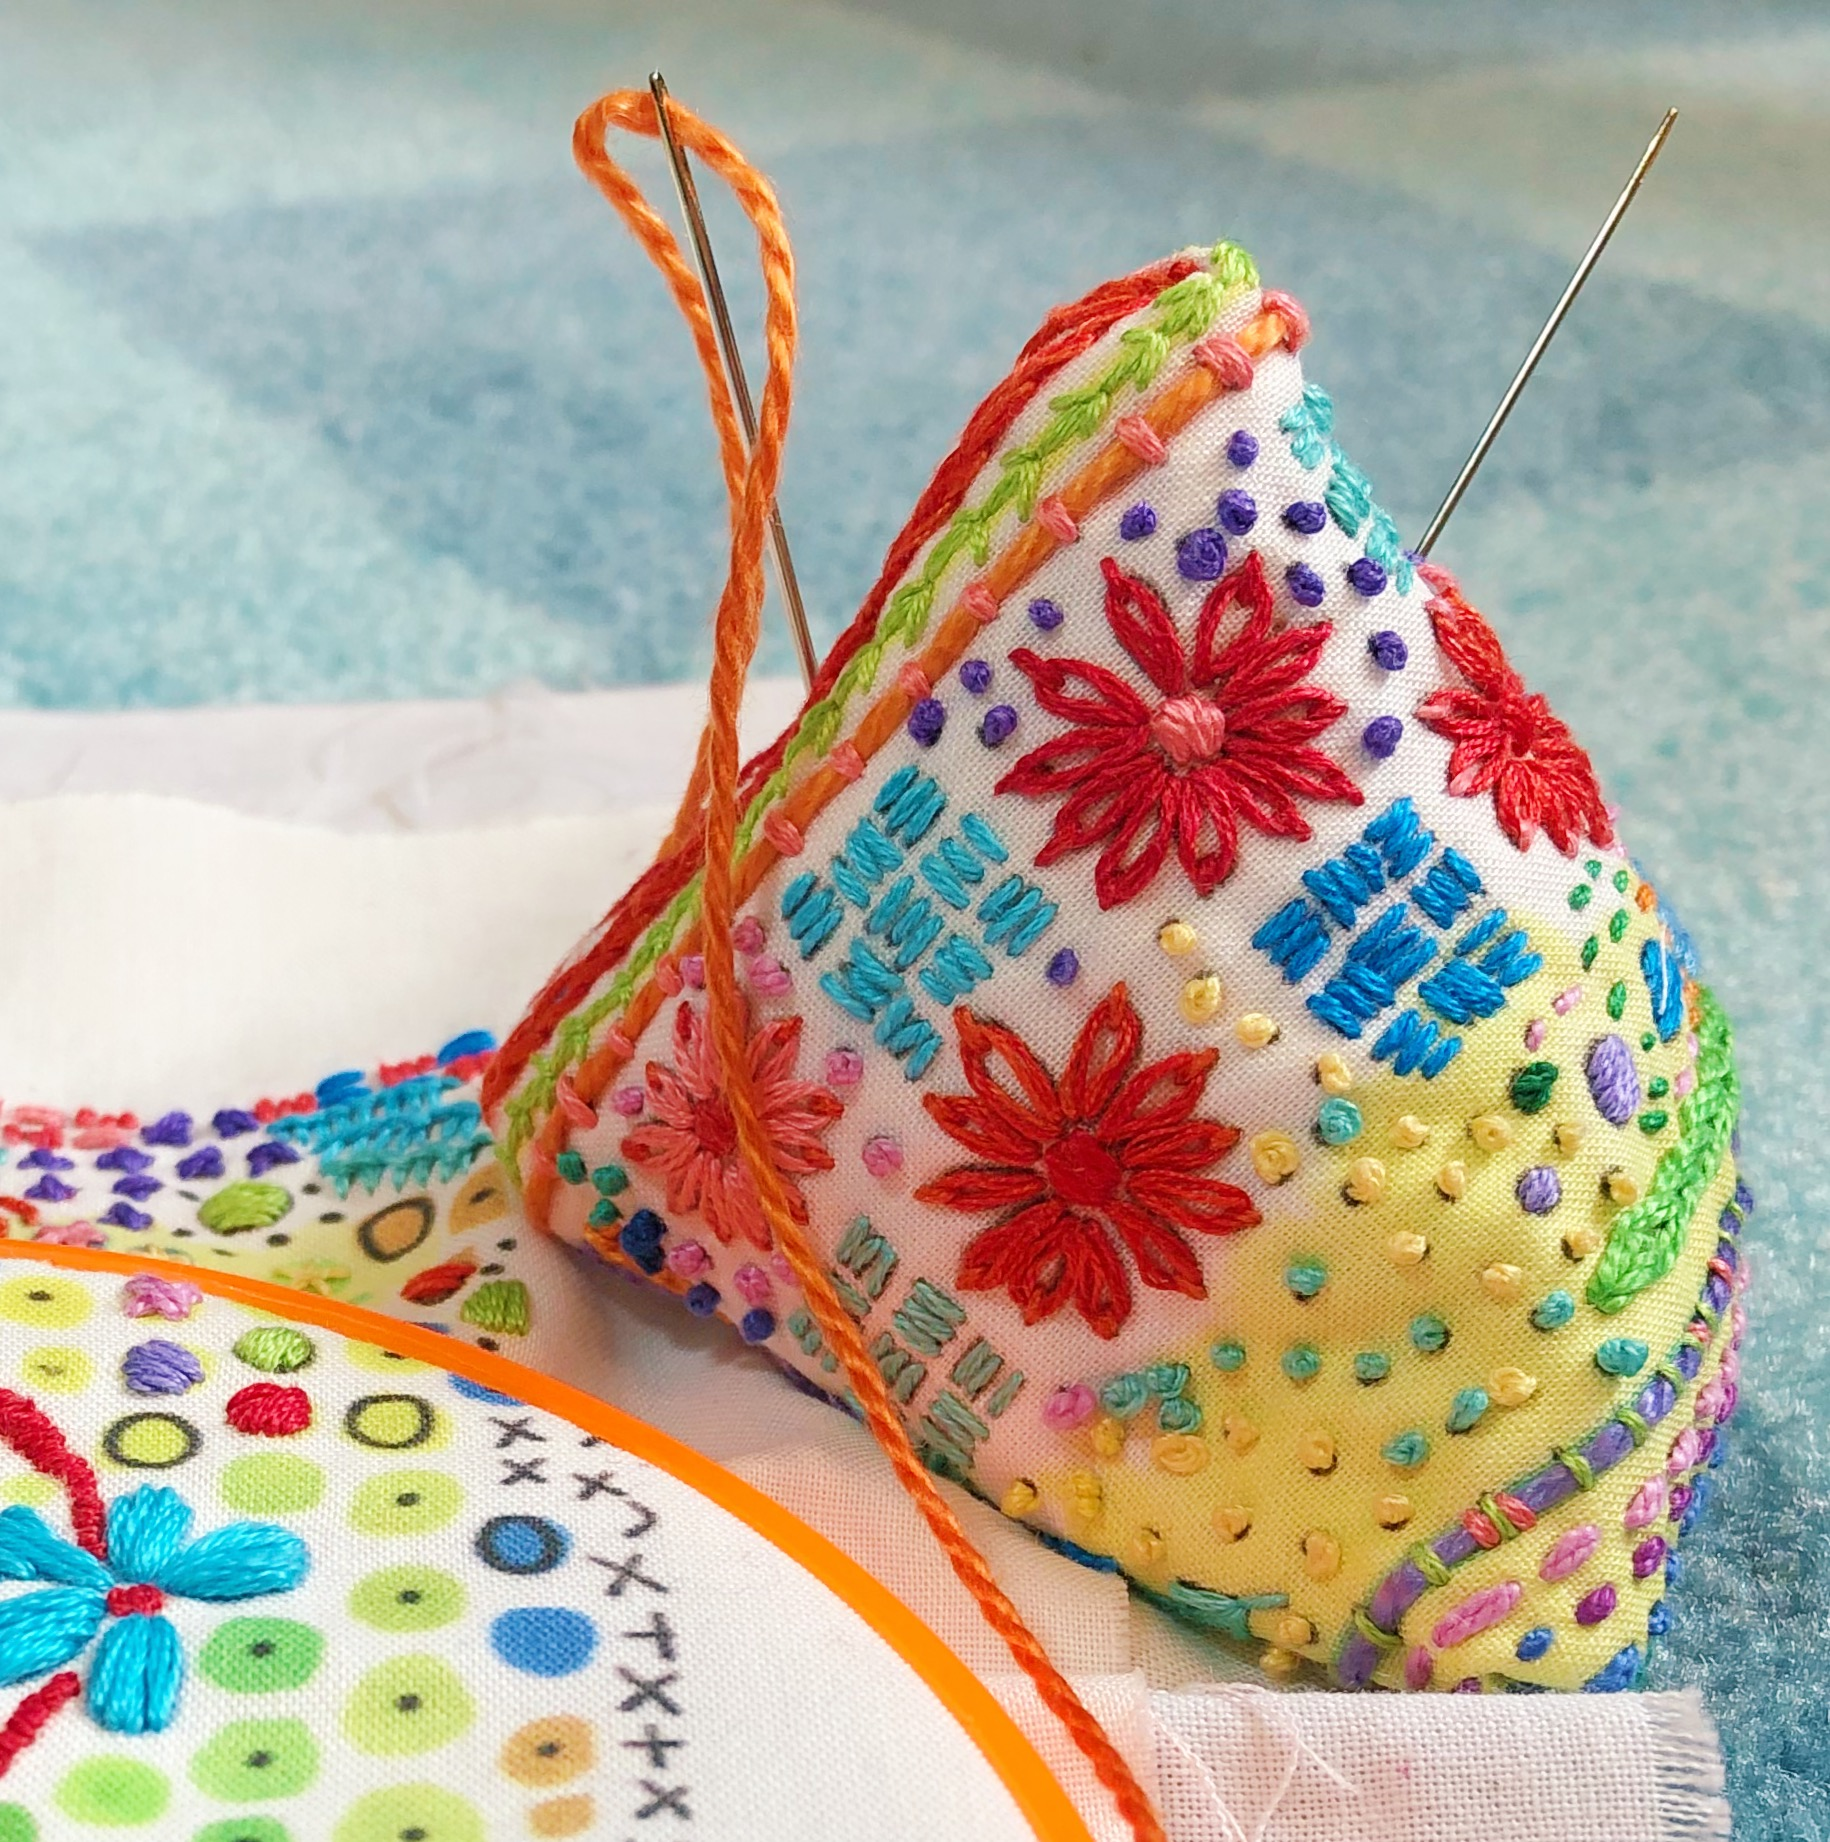 Awesome Creativebug Classes - Here in the Bonny Glen